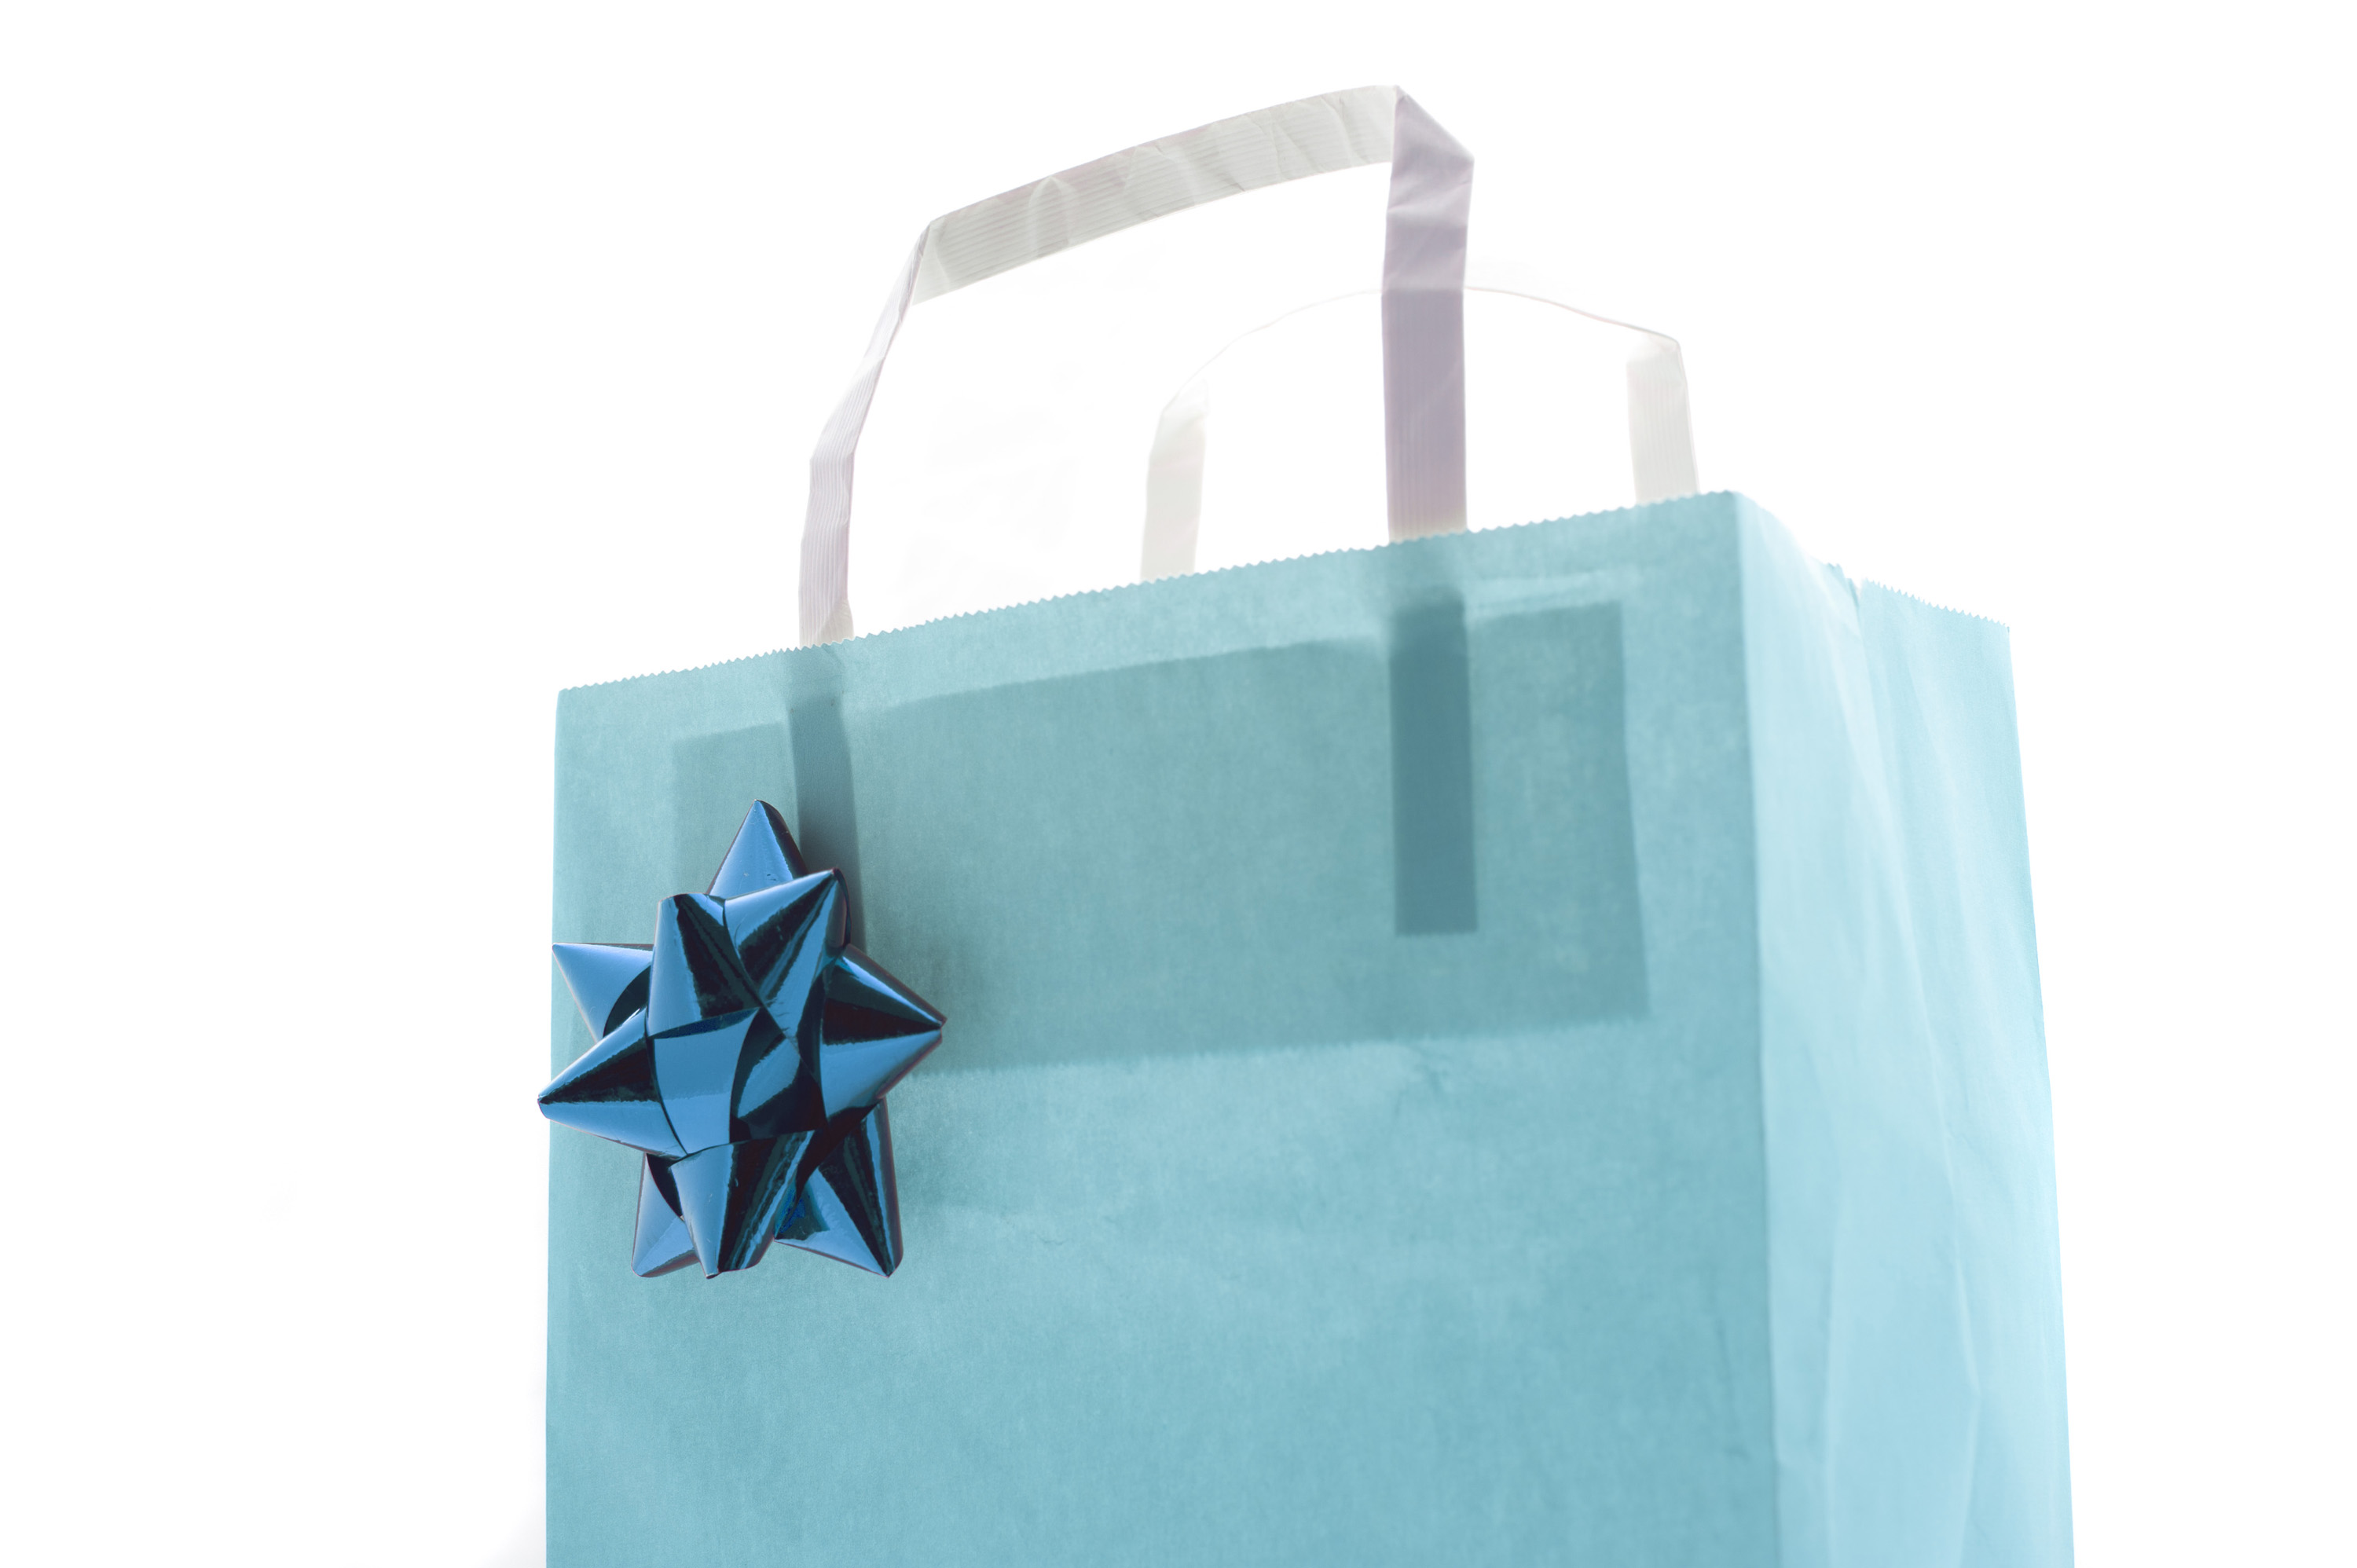 Festive blue gift bag decorated with a matching bow against a high key white background